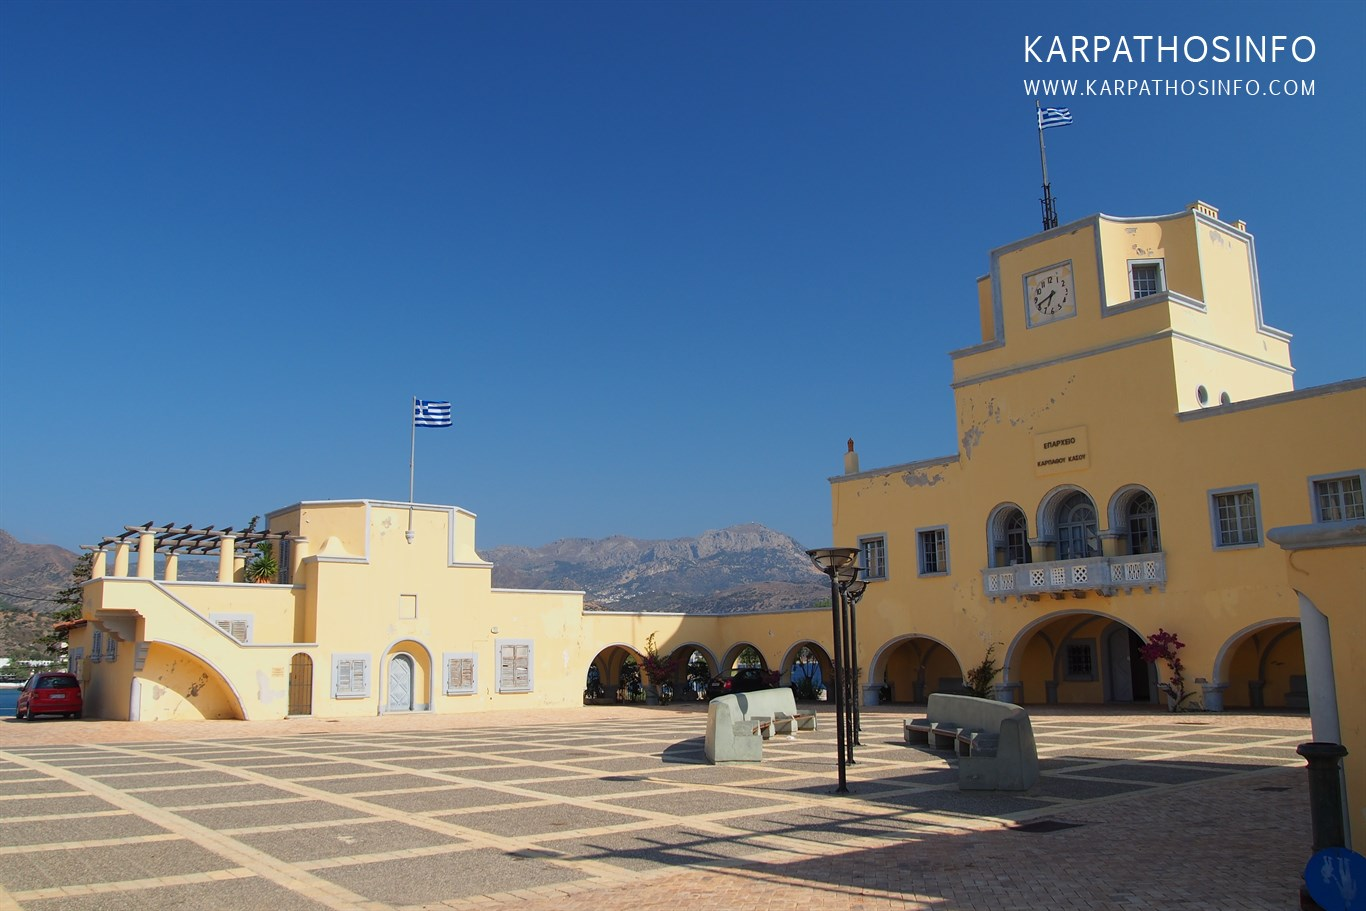 Archeological Museum of Karpathos, Pigadia